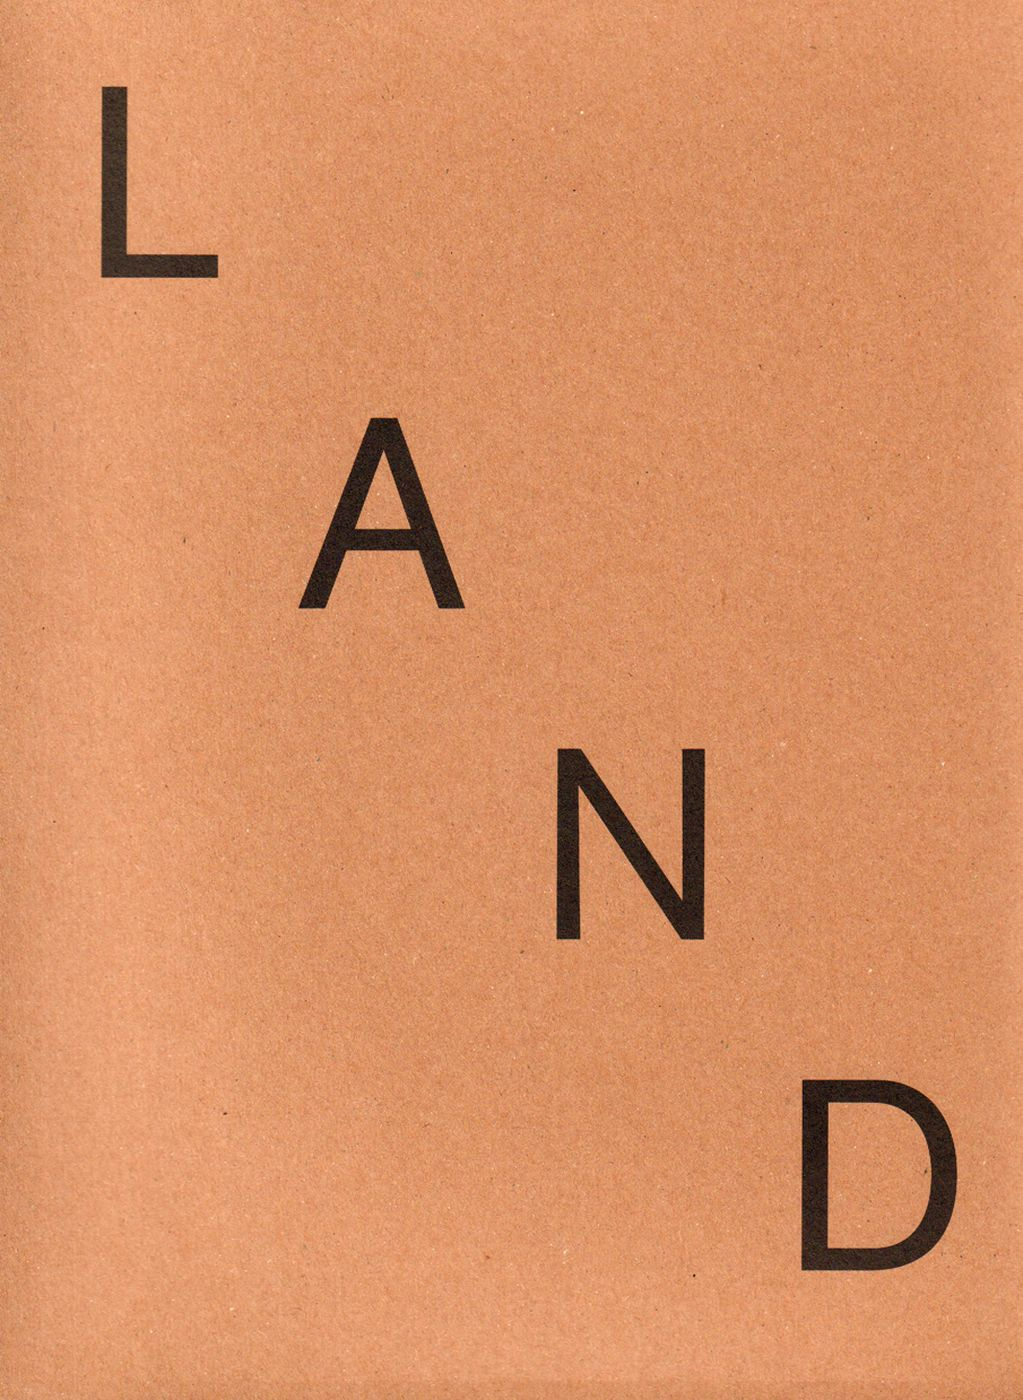 Laura Van Severen, LAND